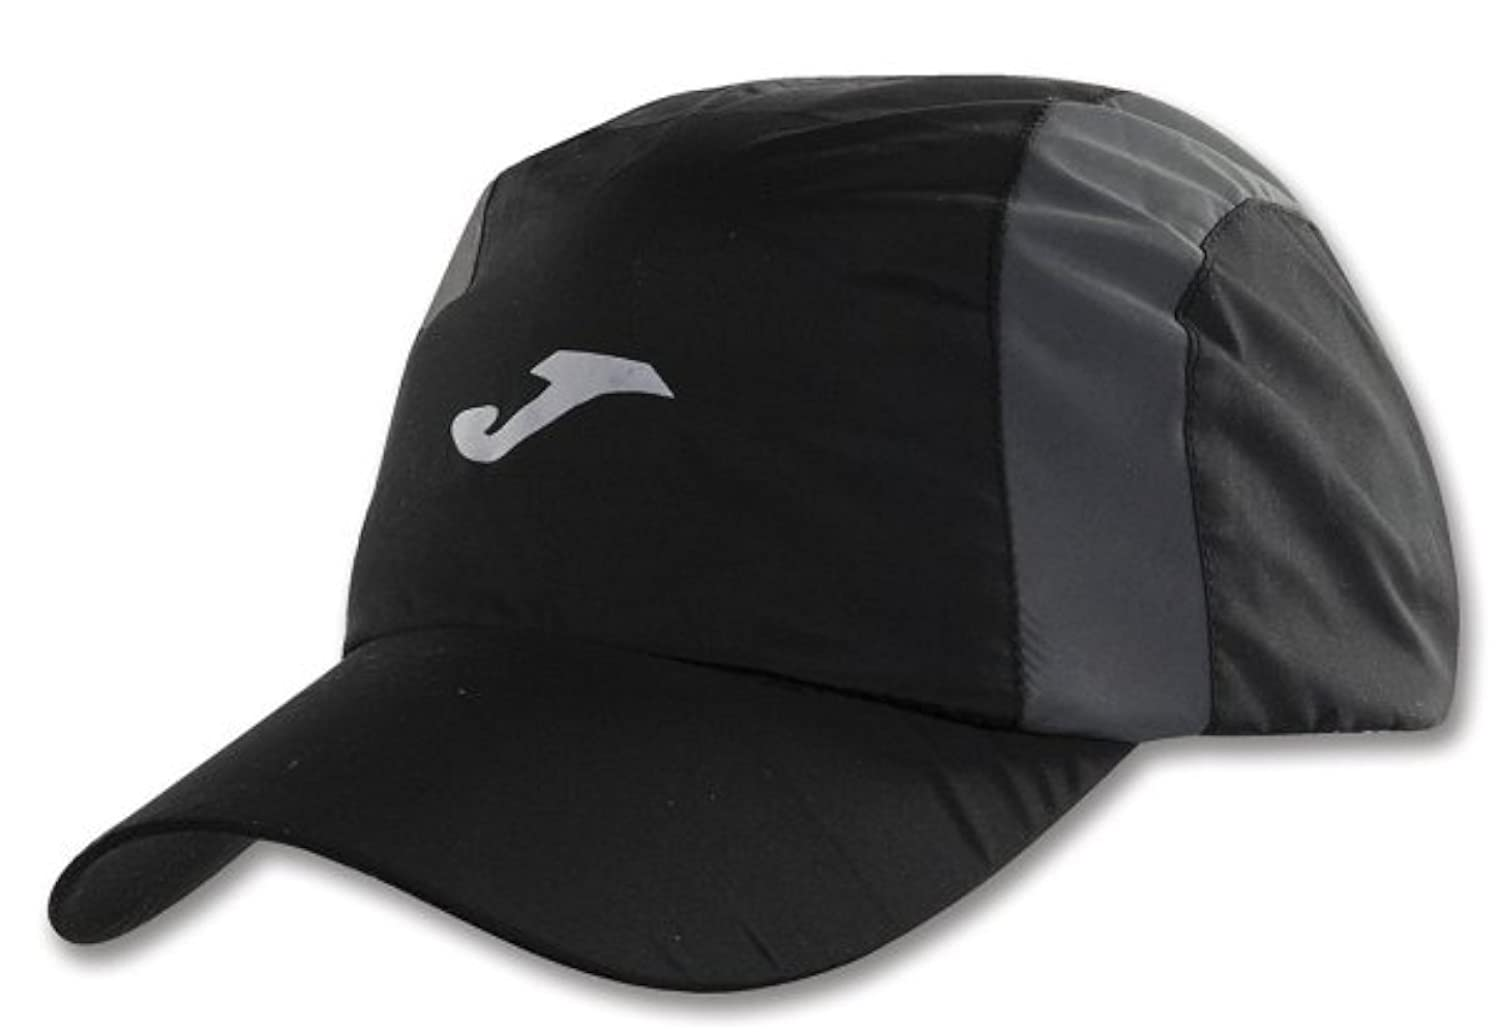 Joma Sportbekleidung Cap Cap Impermeable Schwarz Pack 1 400040.100